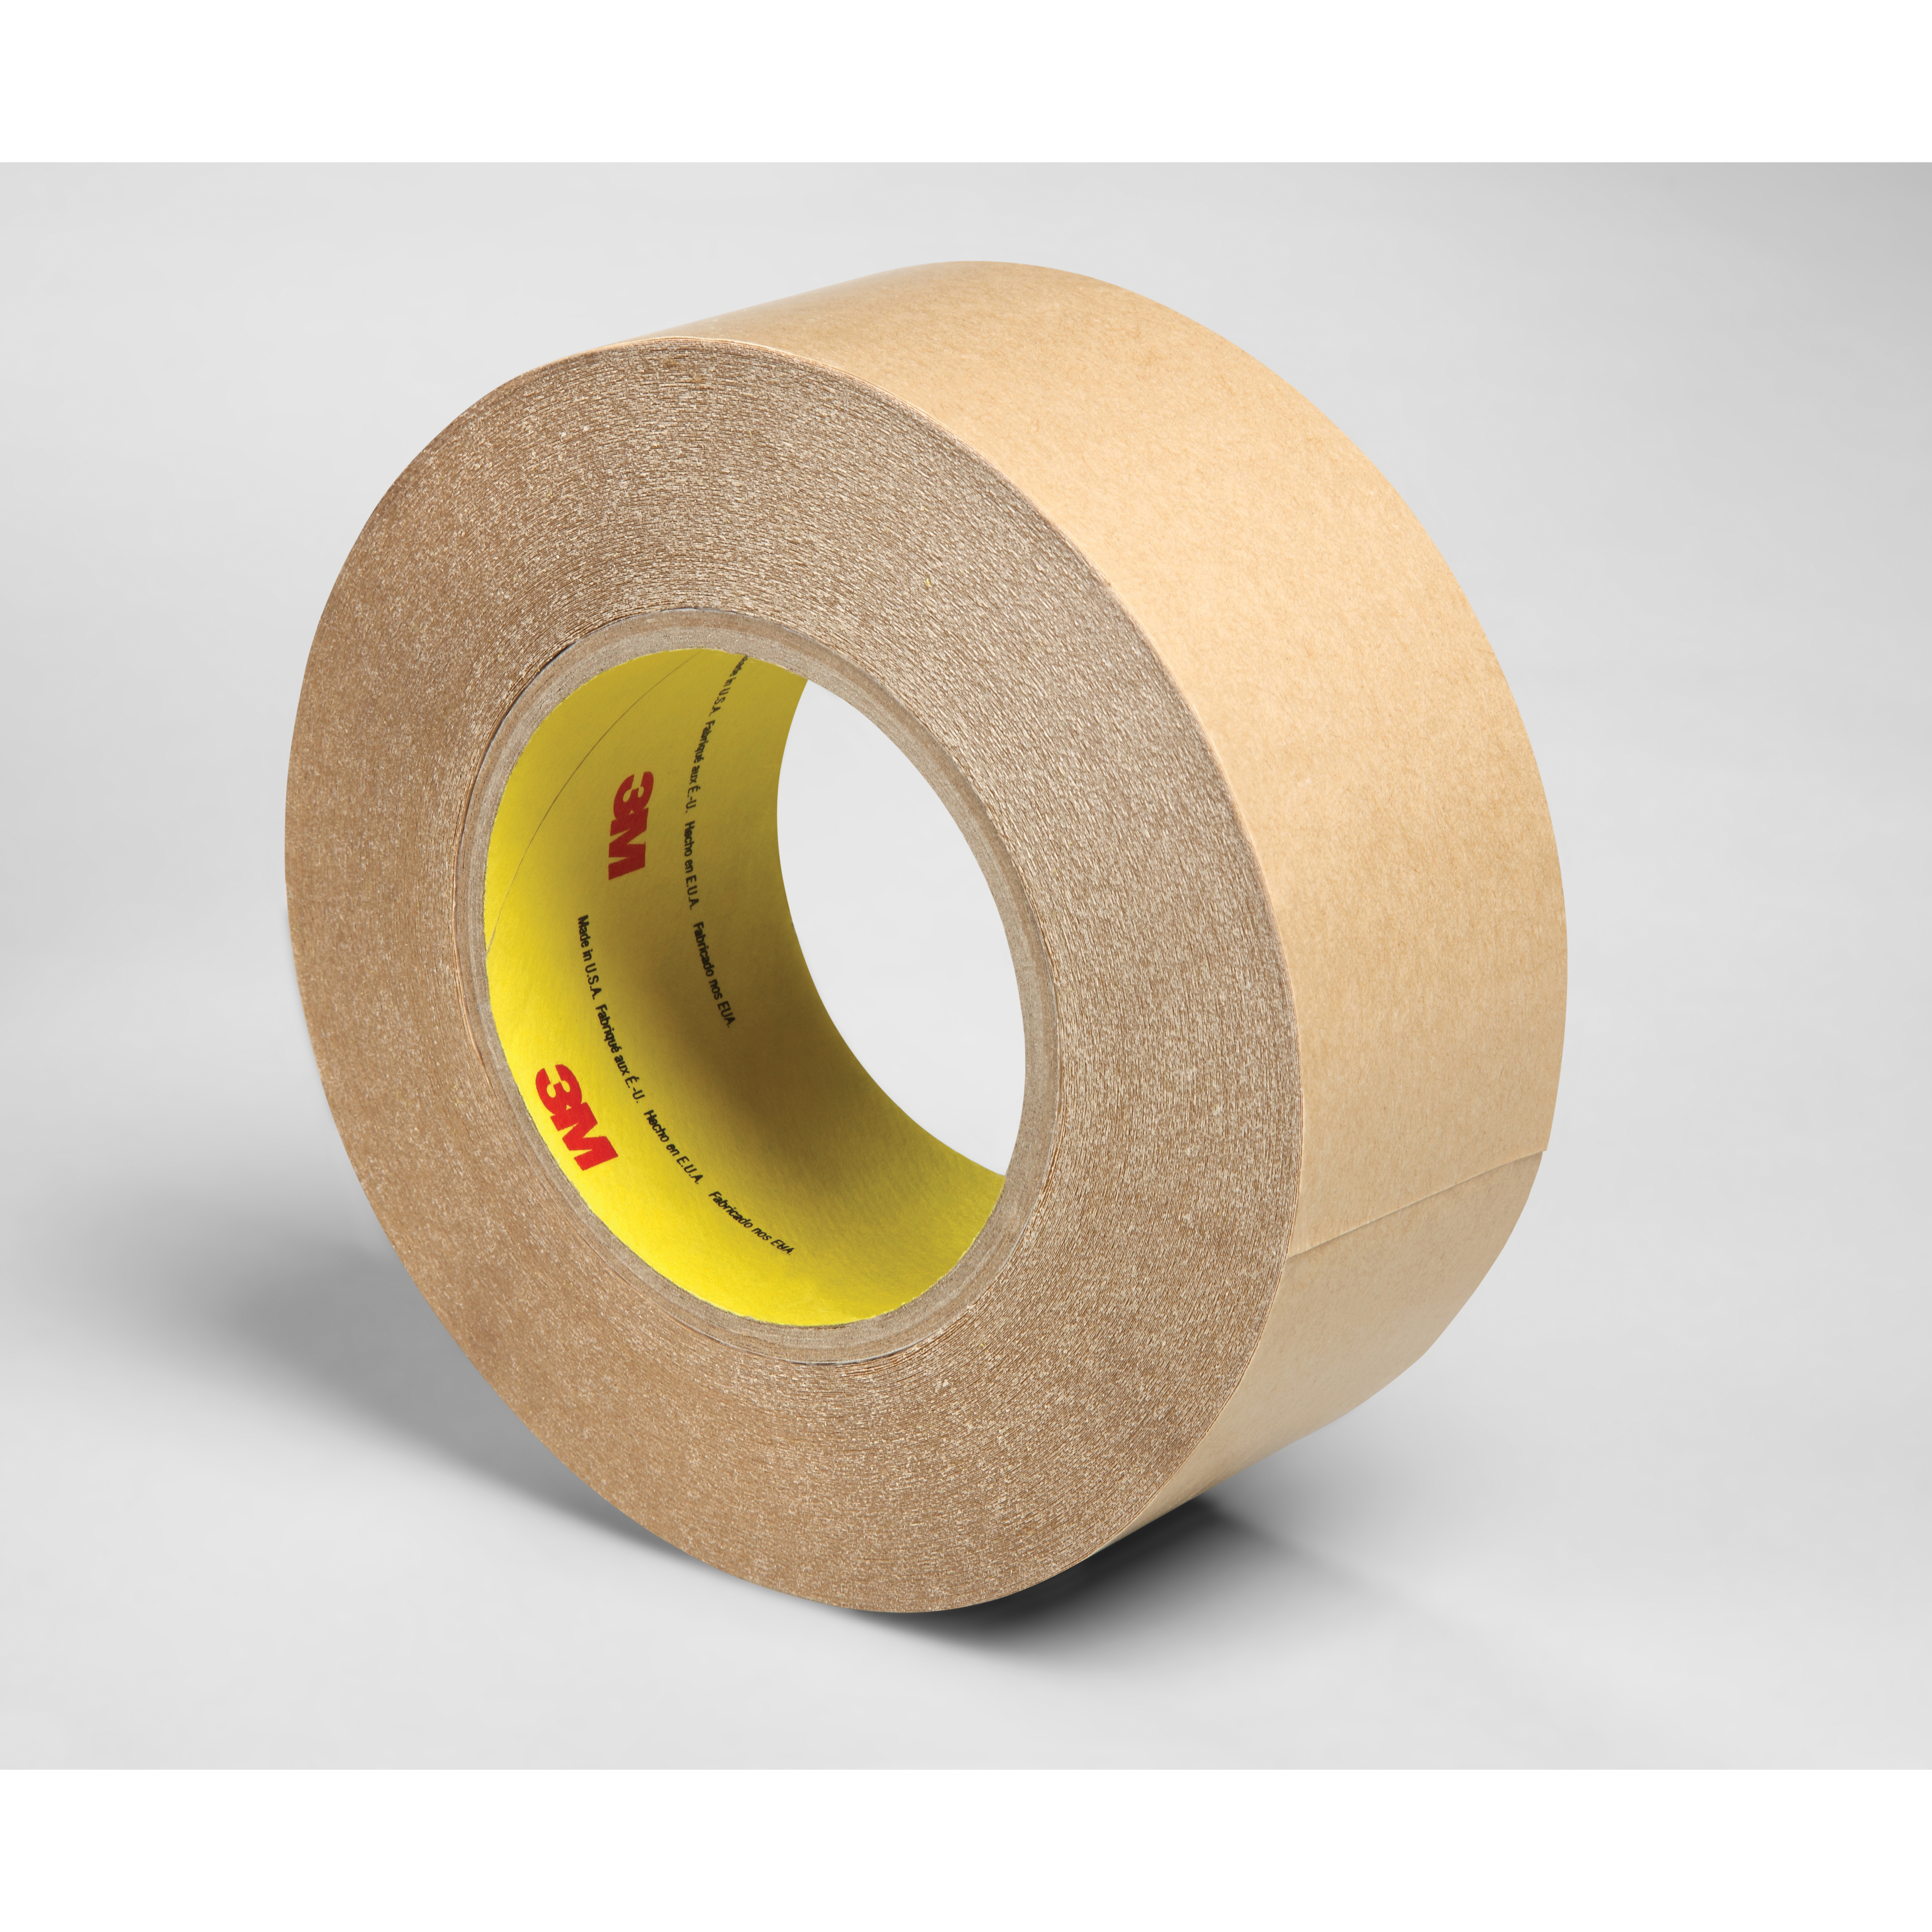 3M™ 021200-84268 Double Coated Tape, 60 yd L x 2 in W, 4 mil THK, 400HT Acrylic Adhesive, Polypropylene Backing, Clear